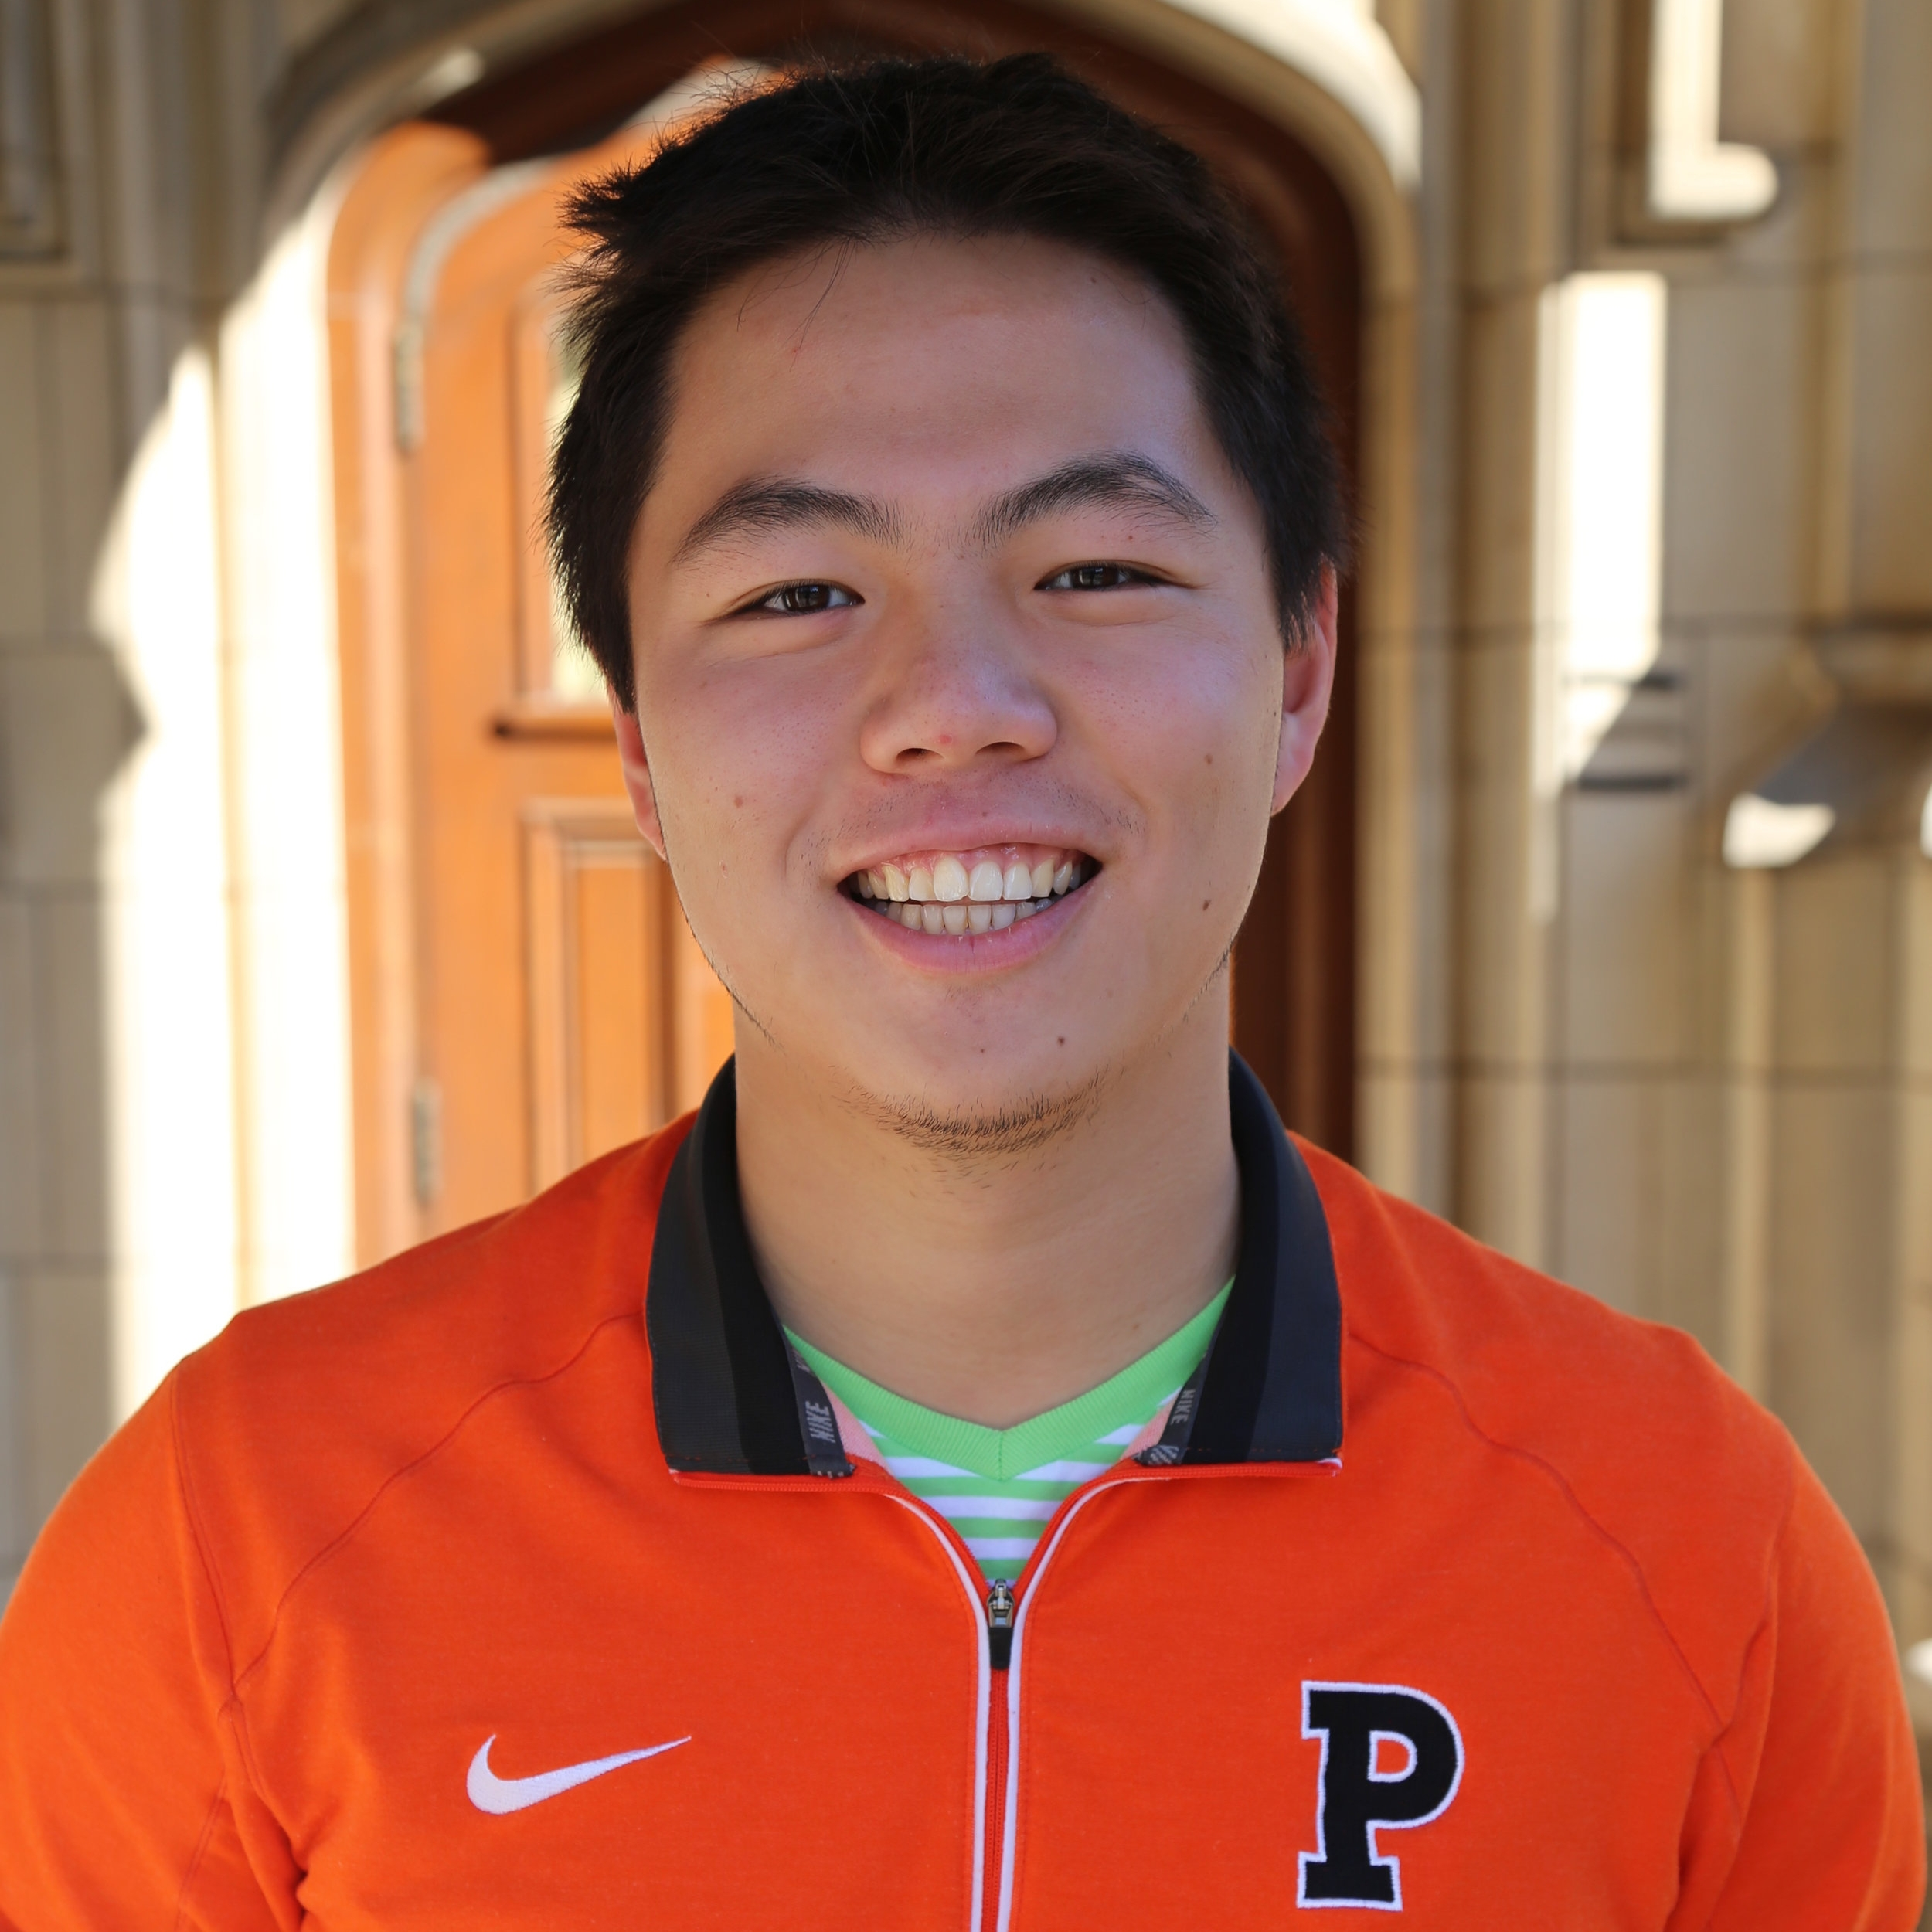 Rawlison Zhang '20 - Vice PresidentRawlison is a junior from Baltimore, Maryland majoring in Chemical and Biological Engineering and pursuing a certificate in Bioengineering. He is interested in the intersection of engineering, policy and business in the energy sector, particularly the economic viability, environmental sustainability, and global impact of emerging energy technologies.